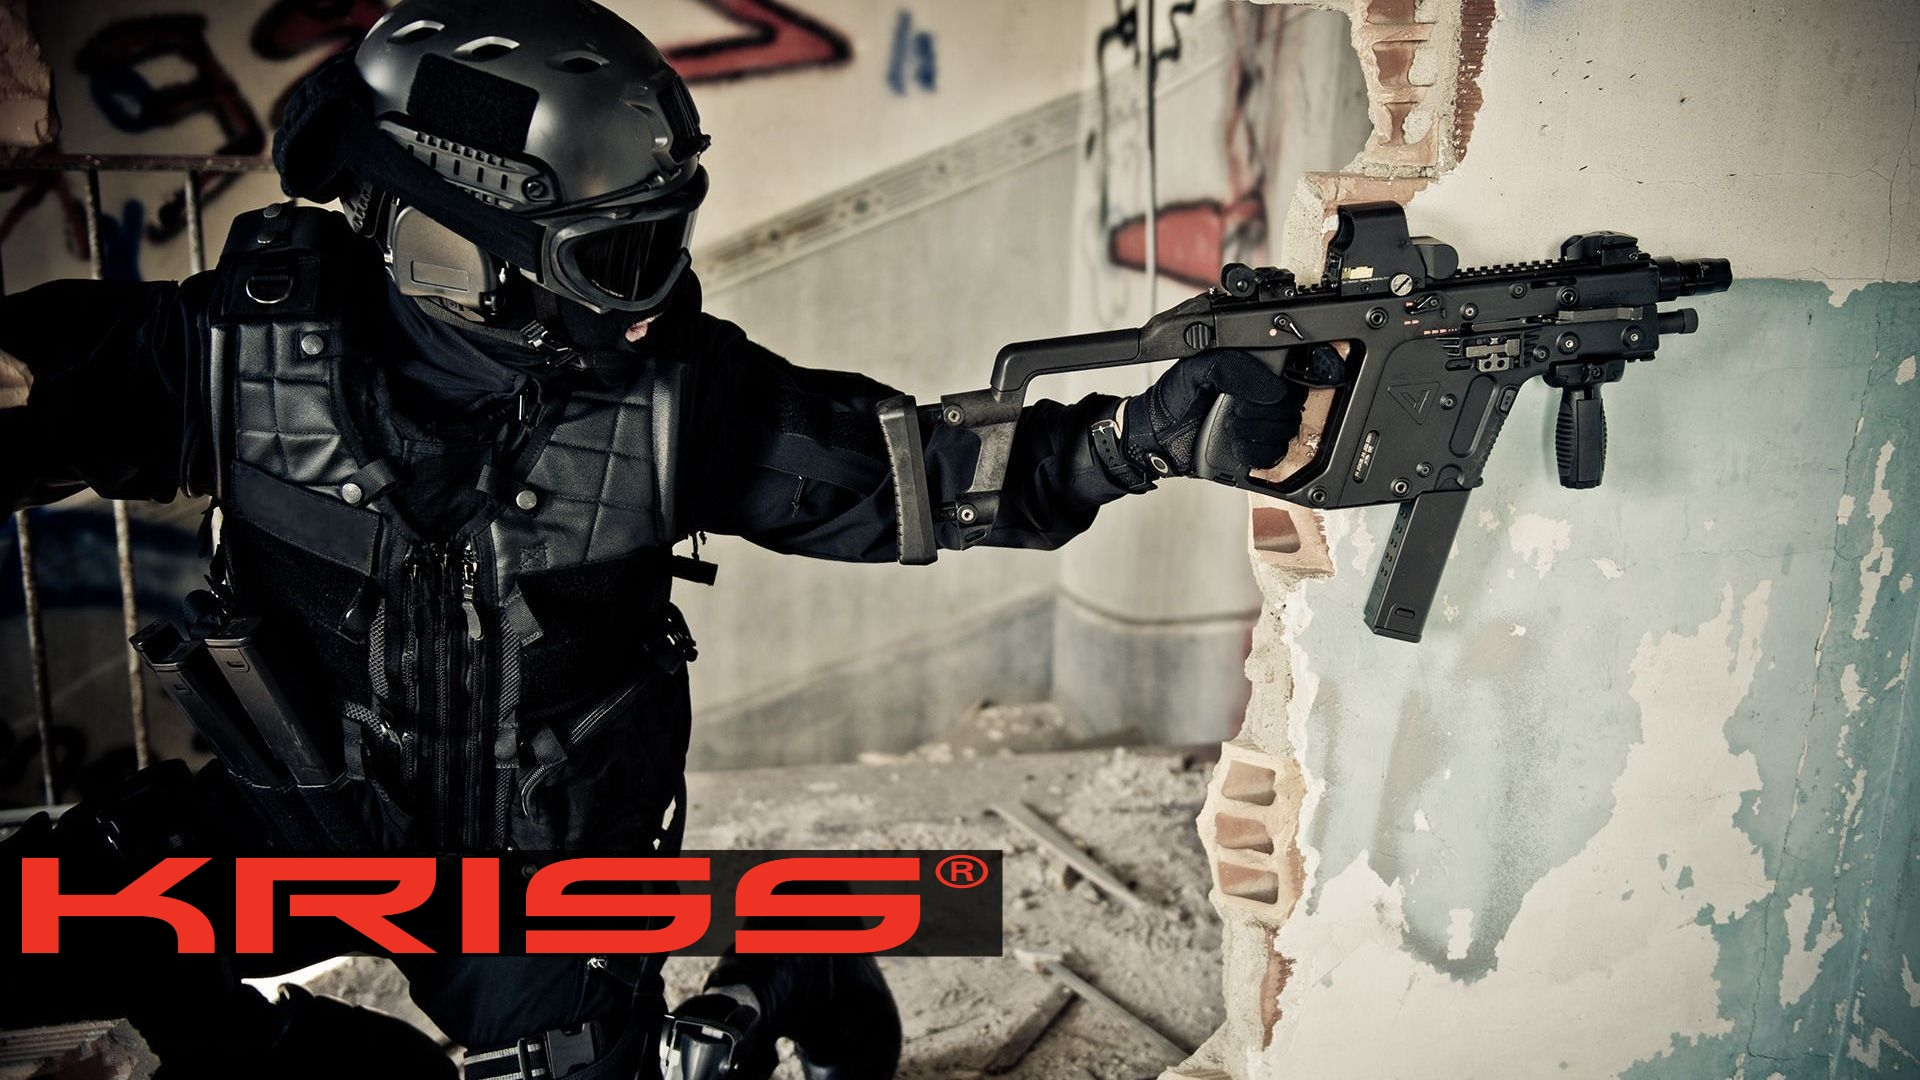 kriss vector gen ii firearms now available in 10mm auto